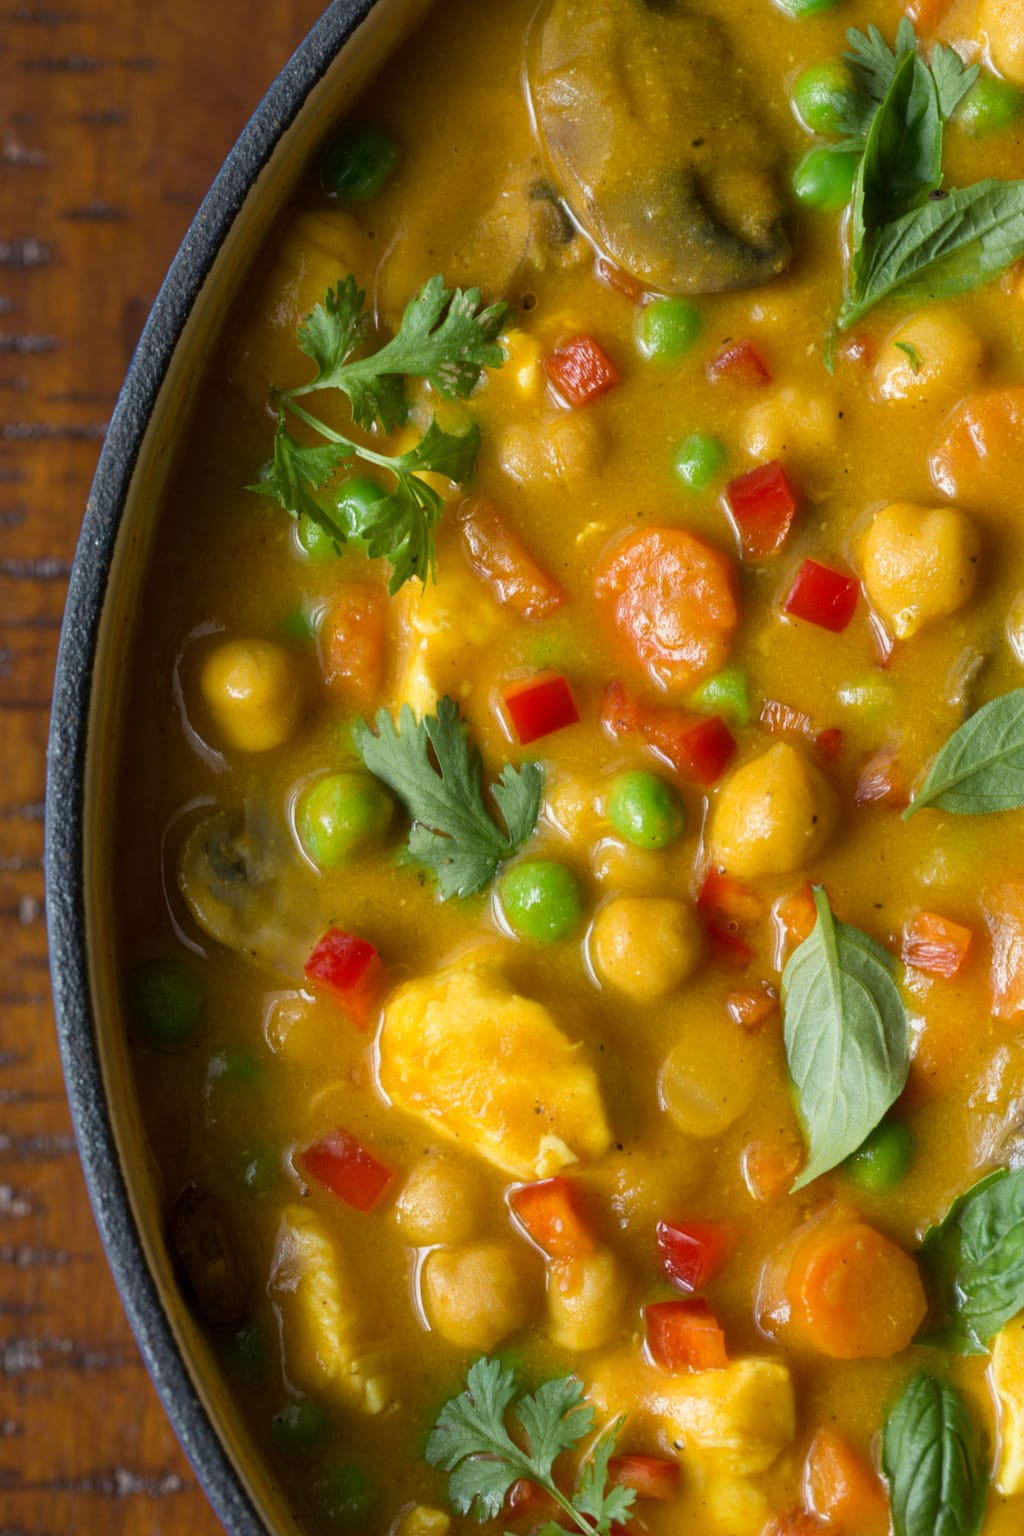 Chicken, Carrot and Chickpea Coconut Curry - the perfect way to get your veggie quota in a super delicious way! This curry is loaded with healthy veggies, lean protein and fabulous flavor!